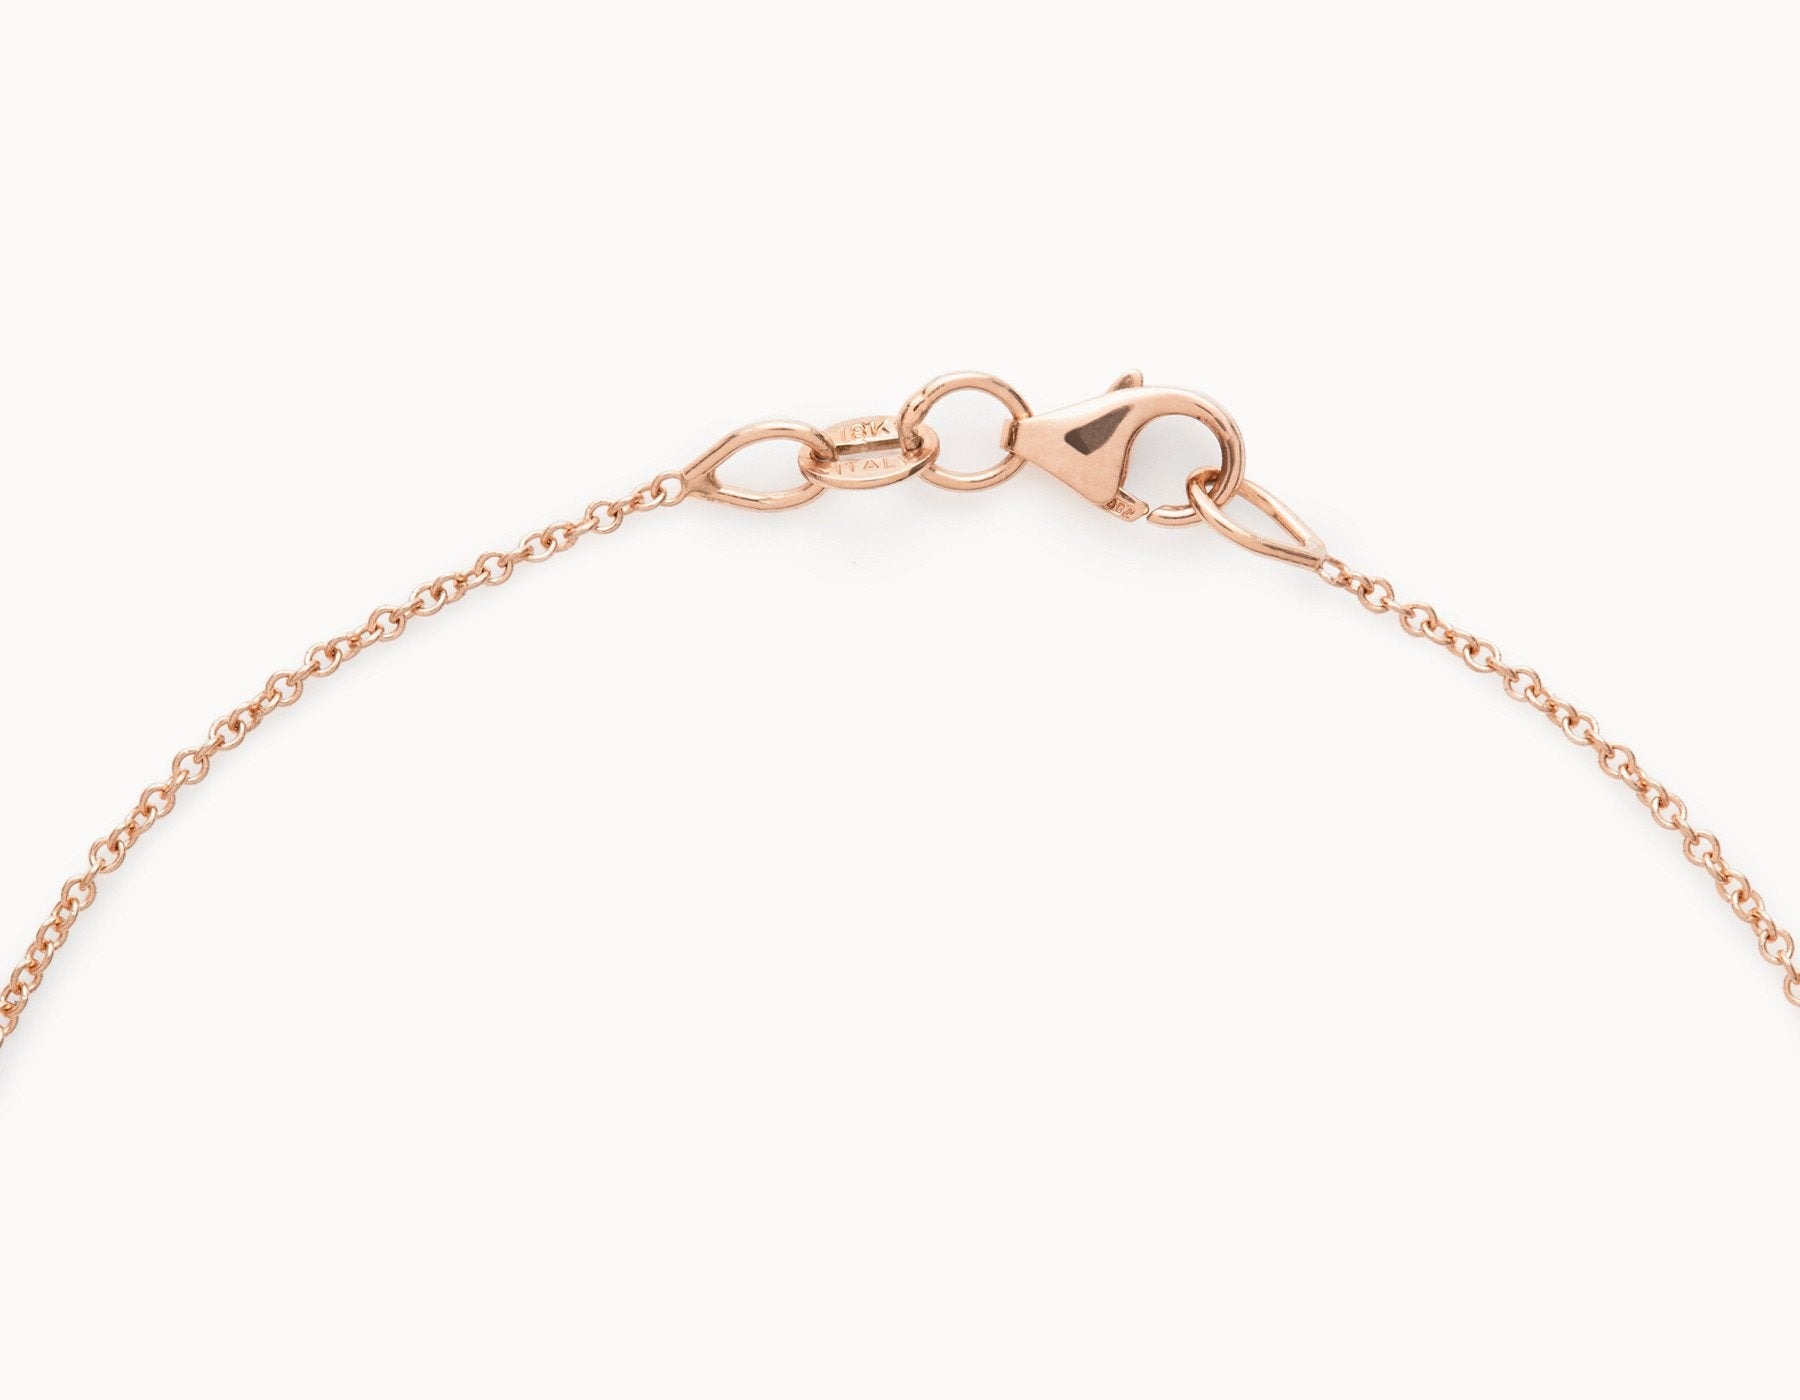 18k Rose Gold Necklace Chain with Lobster Clasp